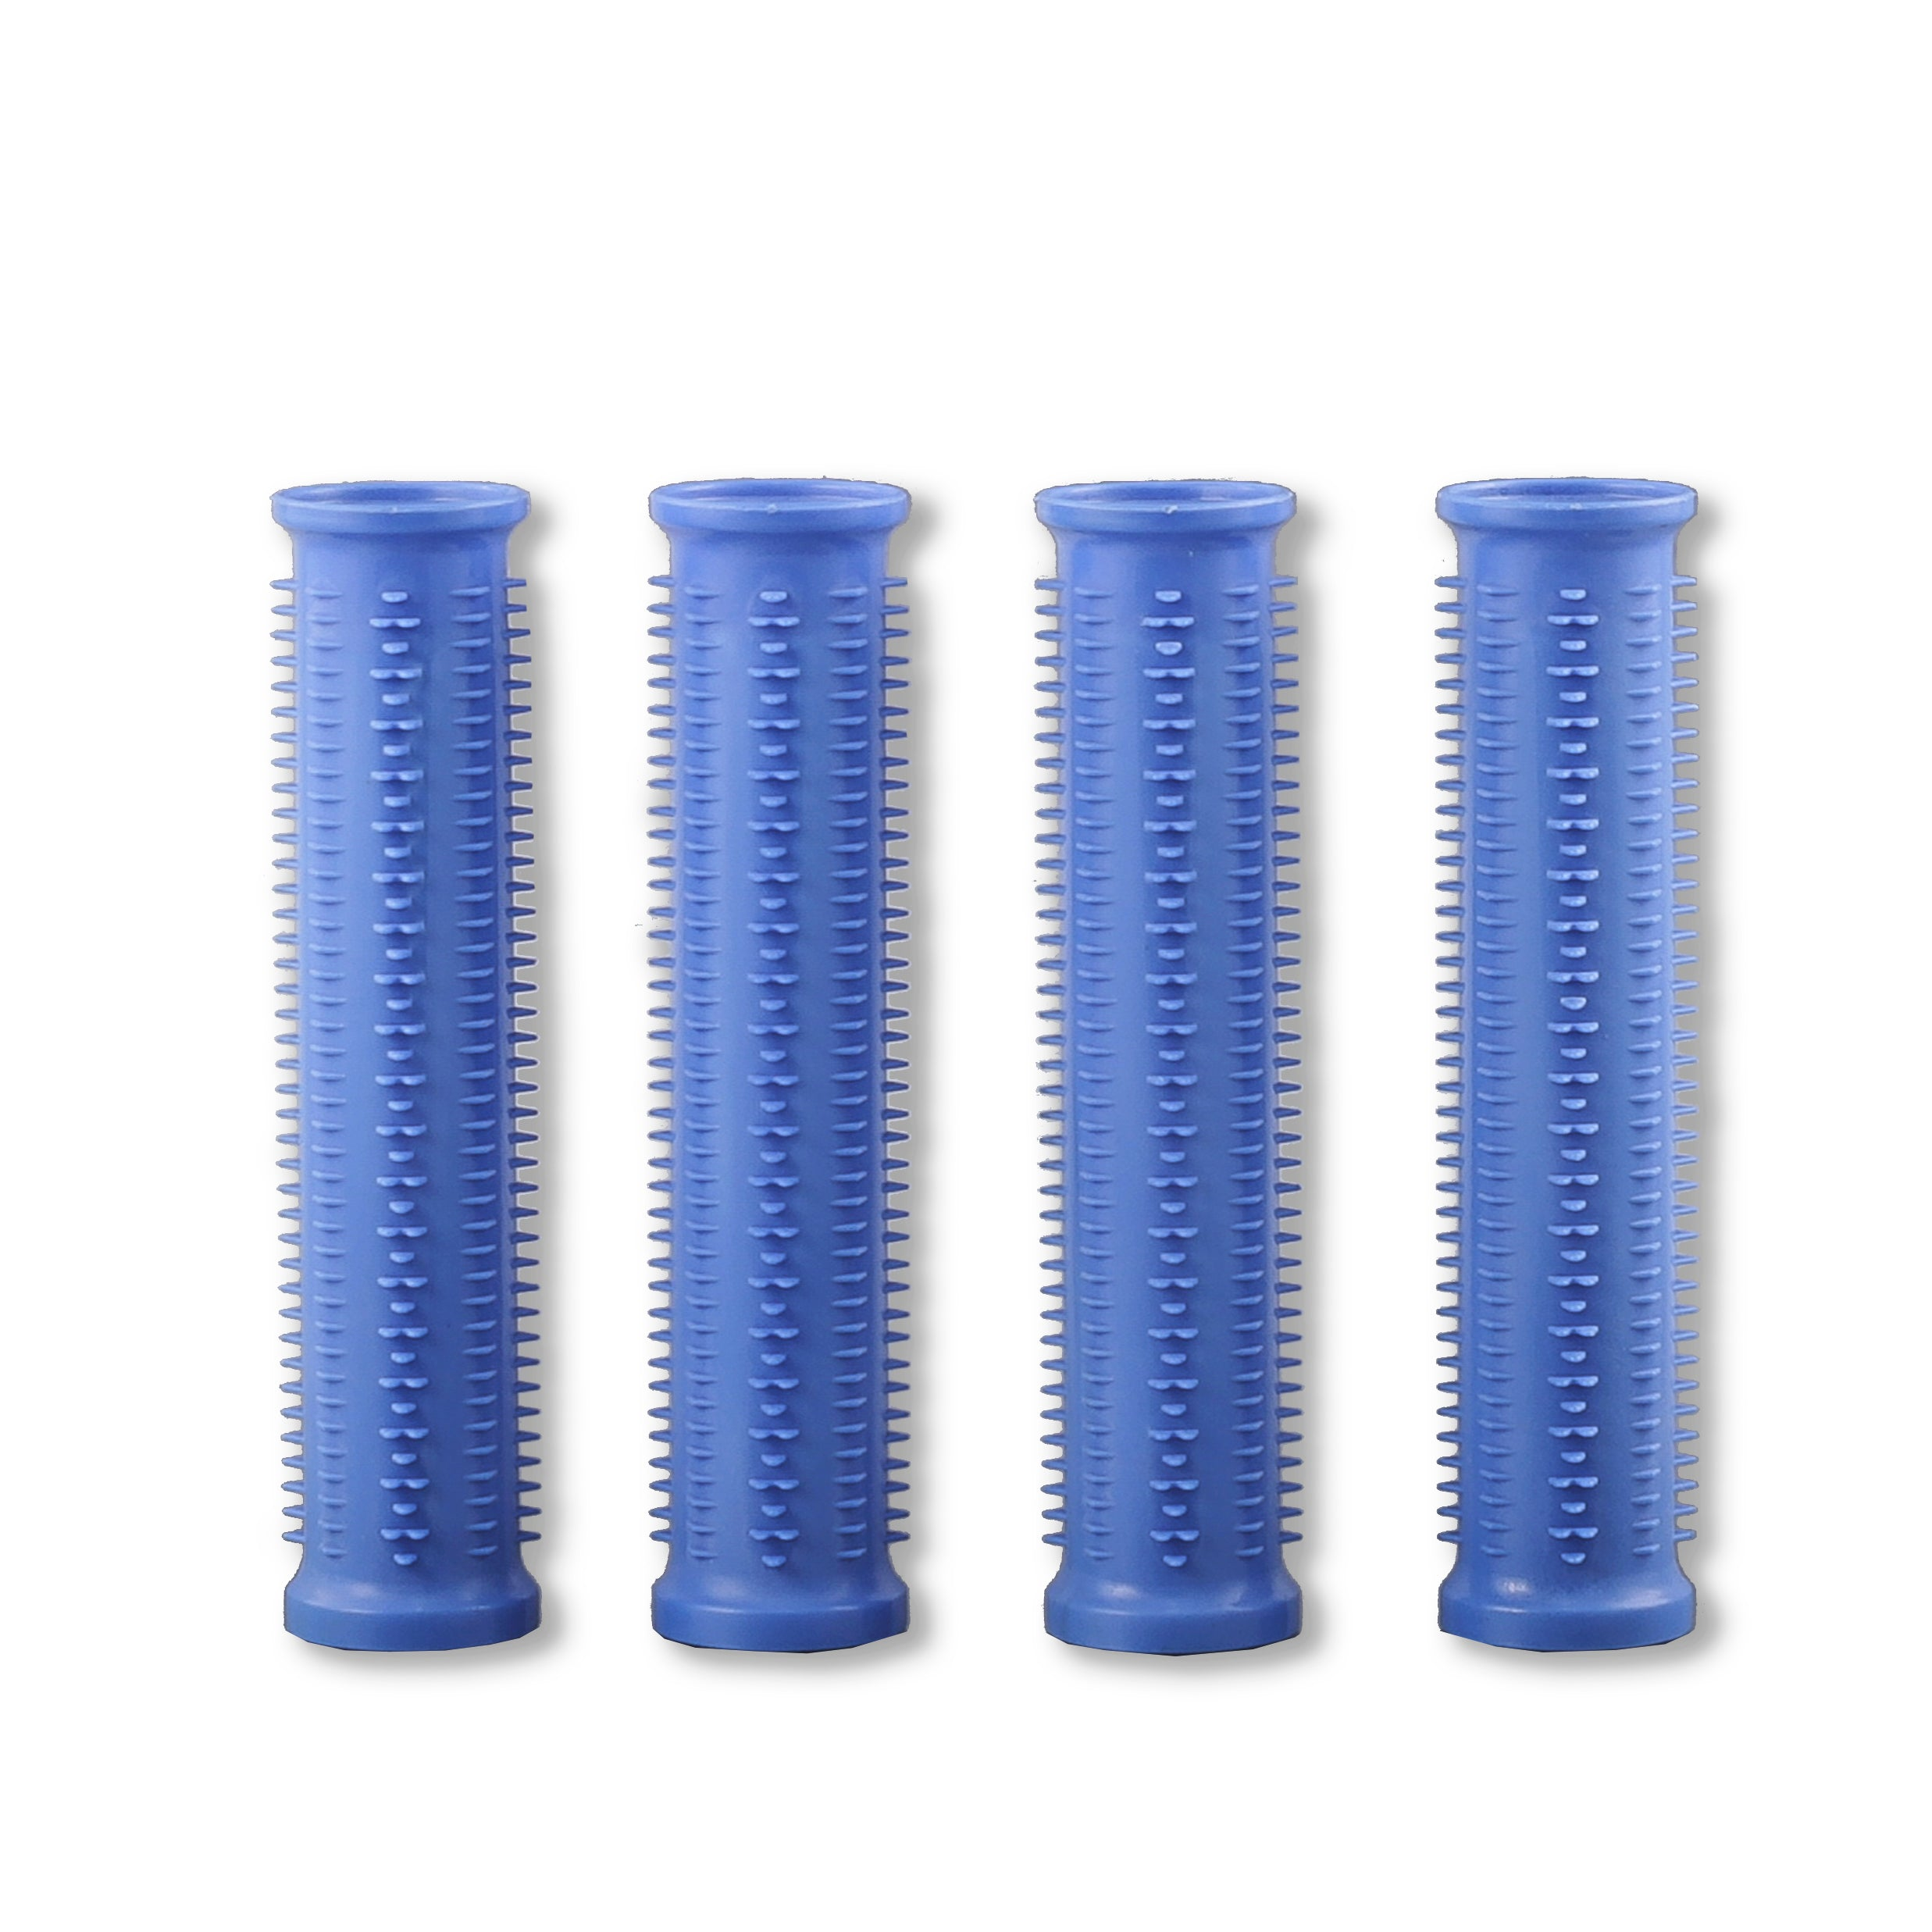 Calista Tools Ion Long Hot Rollers( 4 Pack ) in Blue